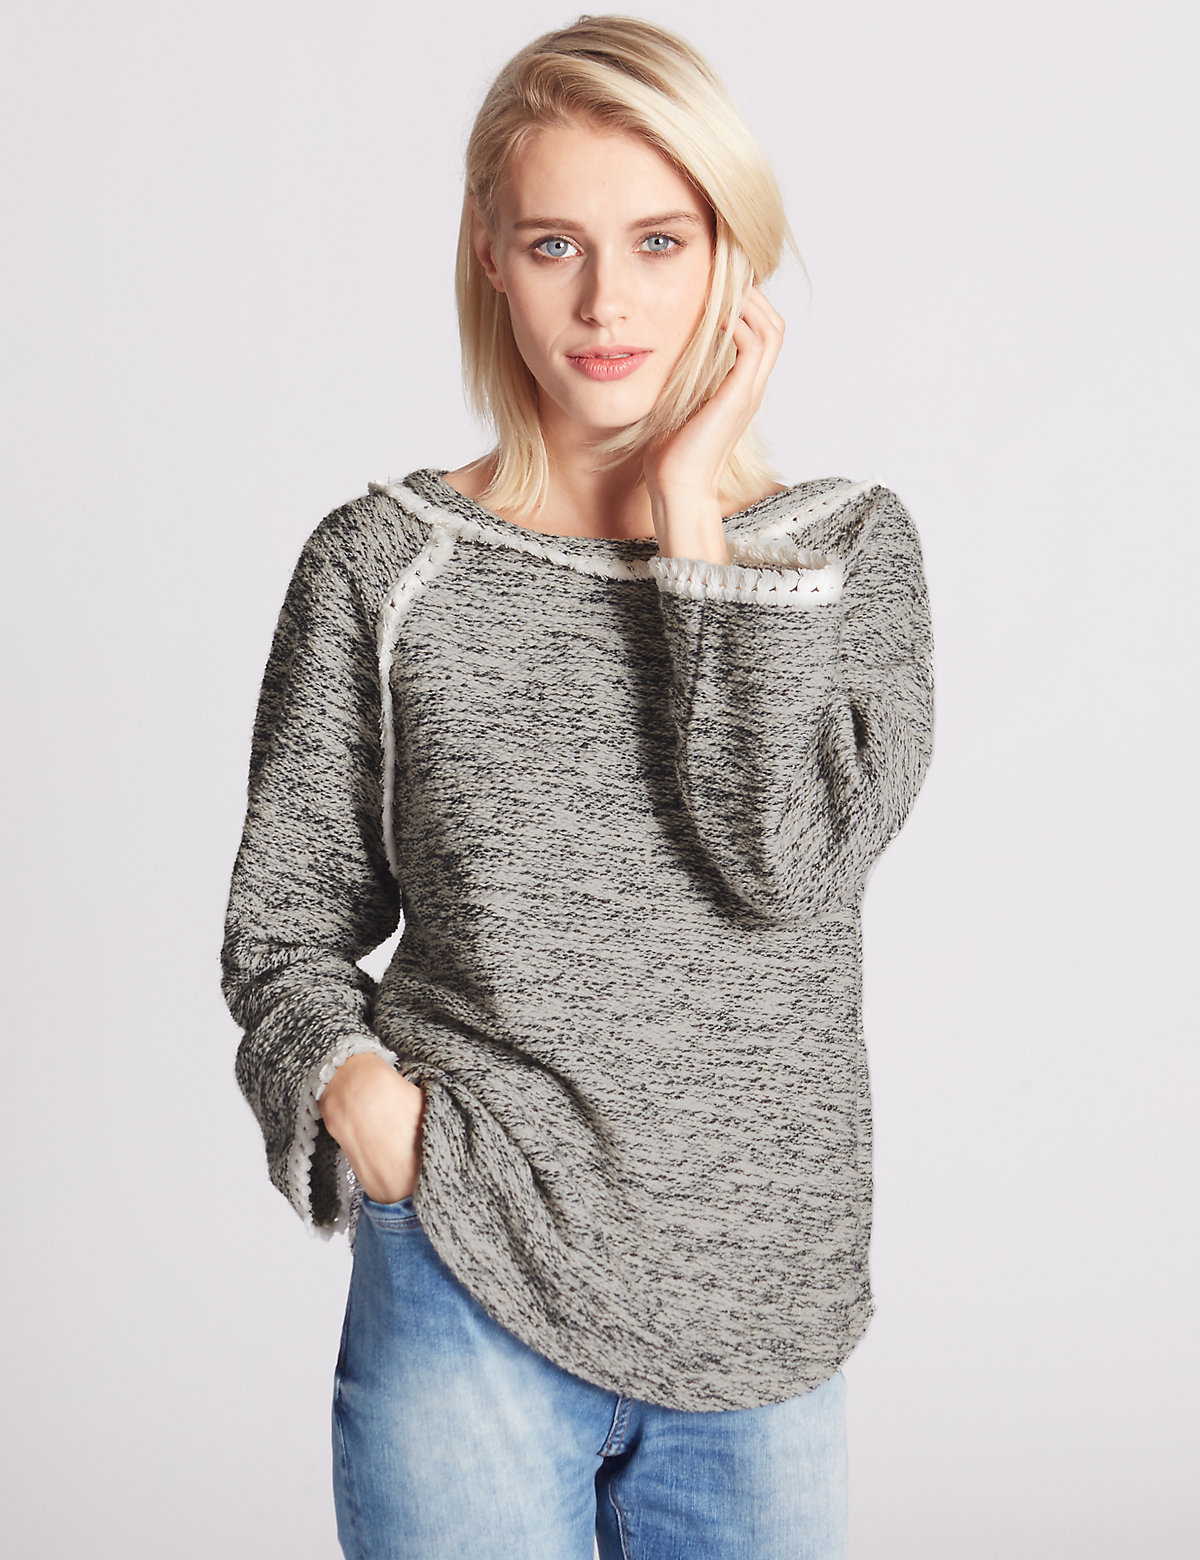 Indigo Collection 3/4 Sleeve Textured Tassel Sweatshirt